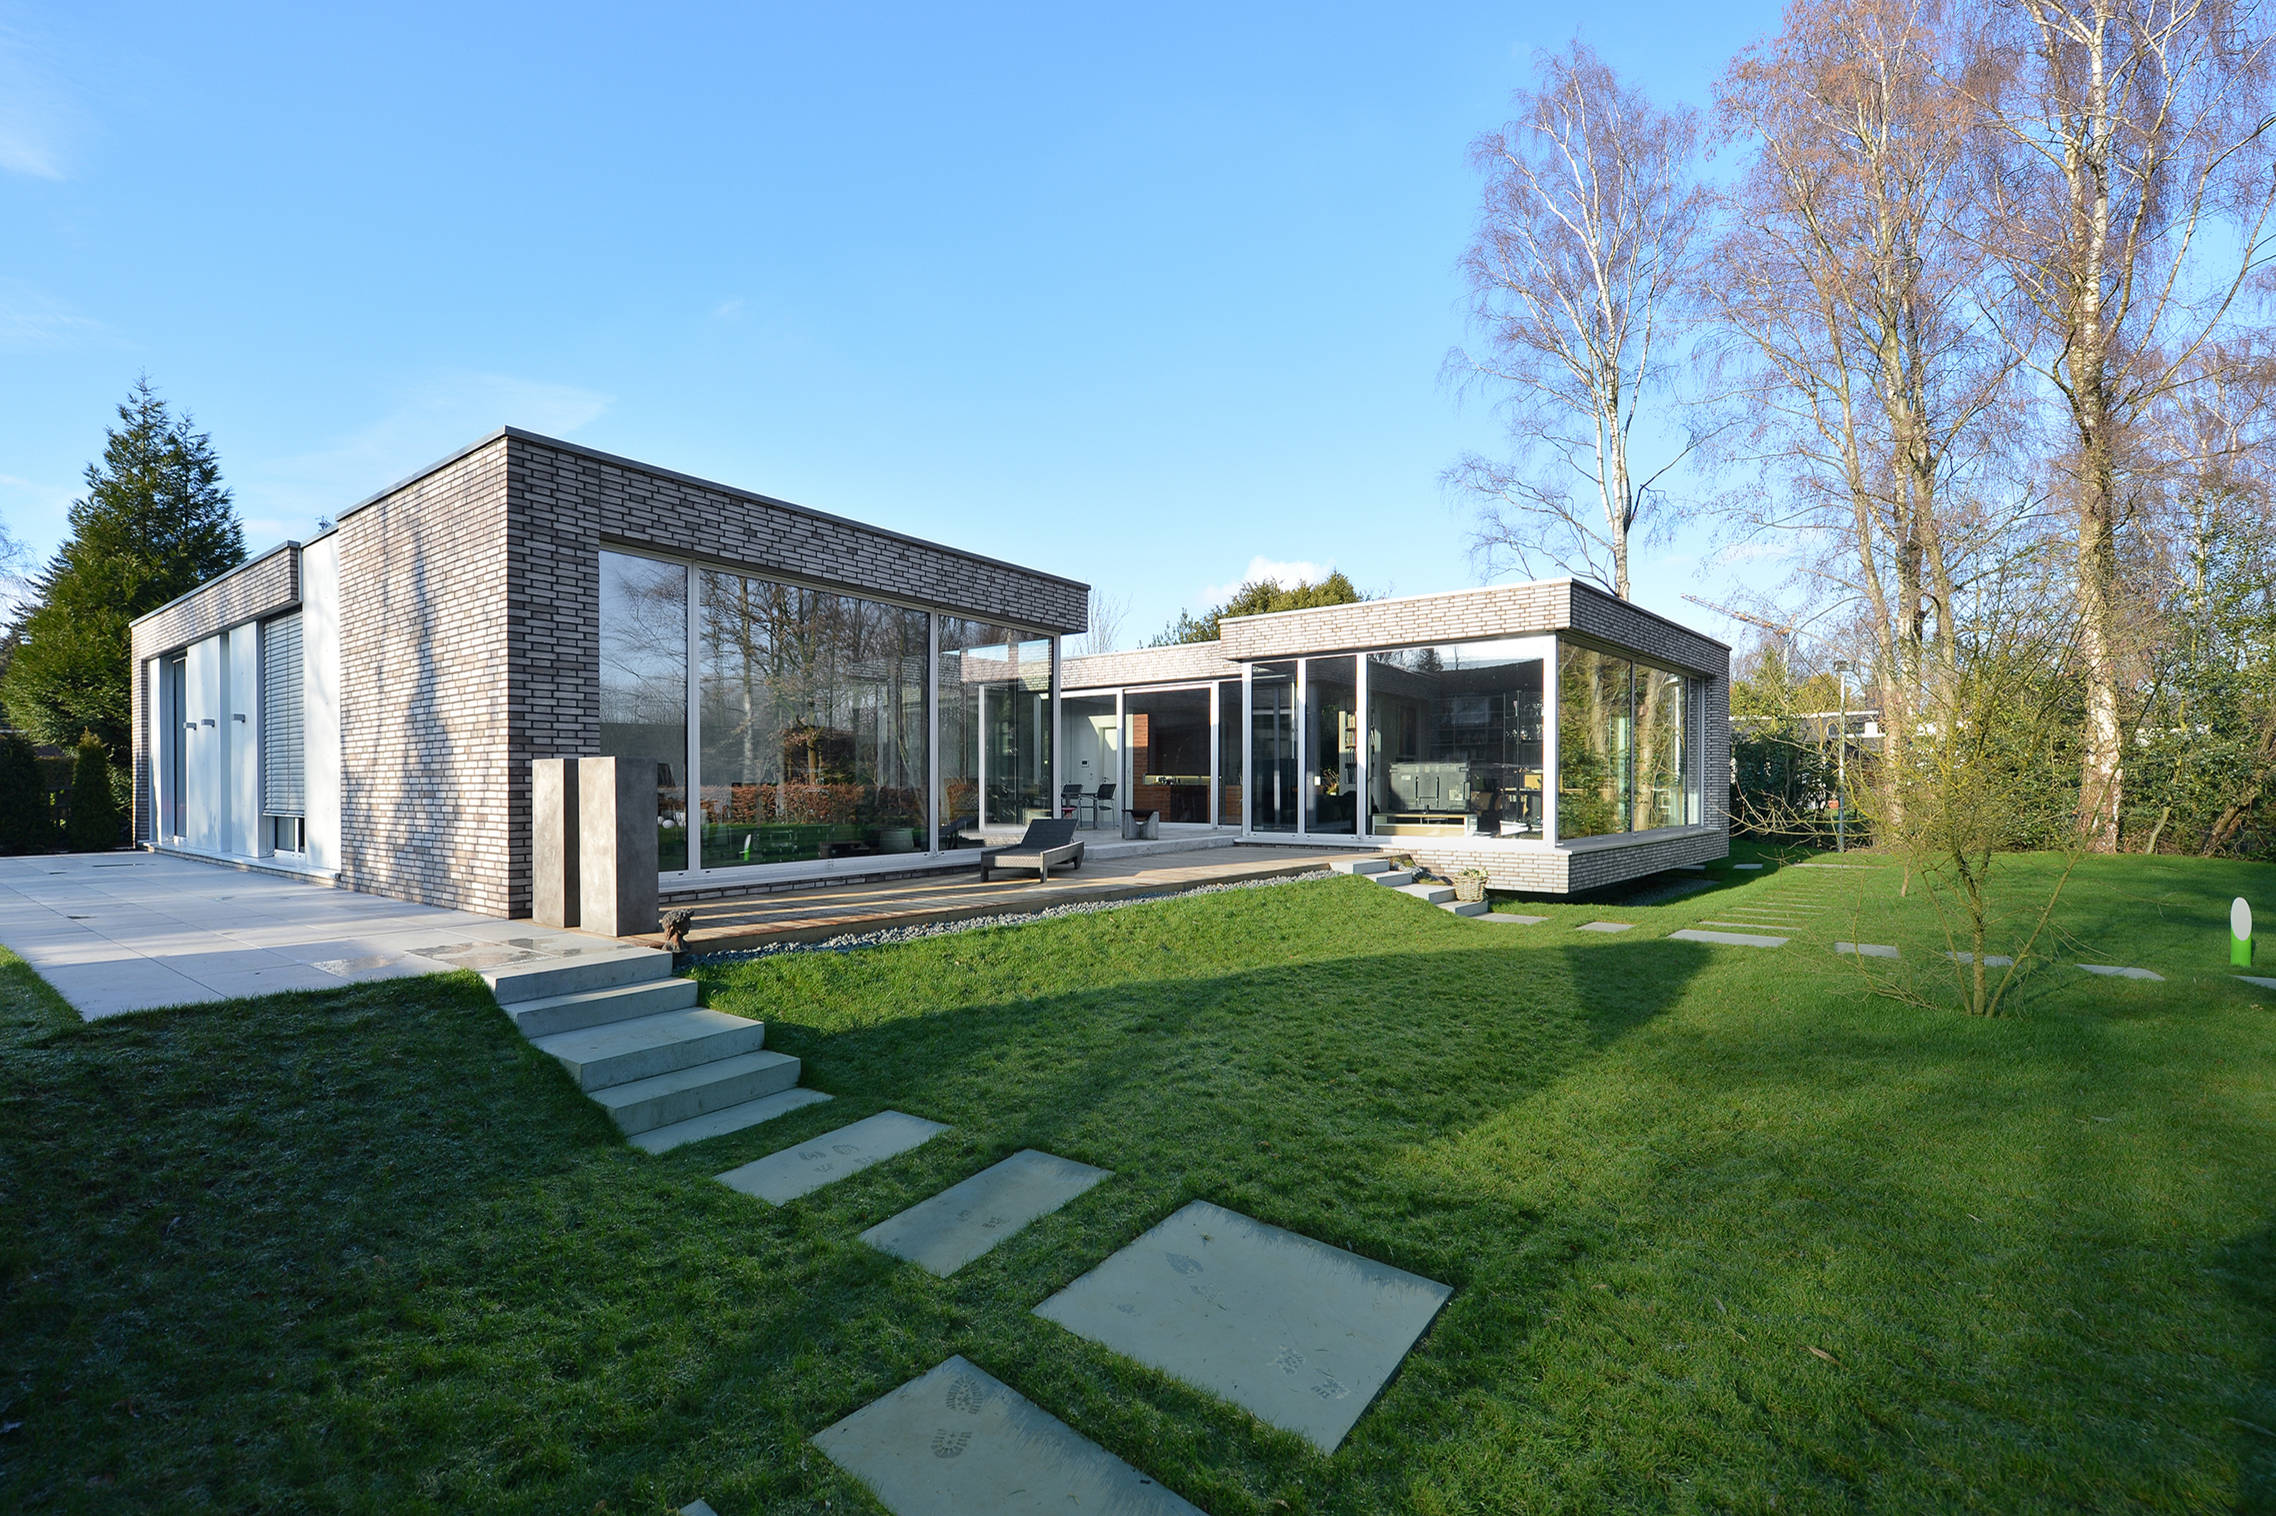 16 Delightful Modern Landscape Ideas That Will Update Your ... on Contemporary Backyard Landscaping Ideas id=59127